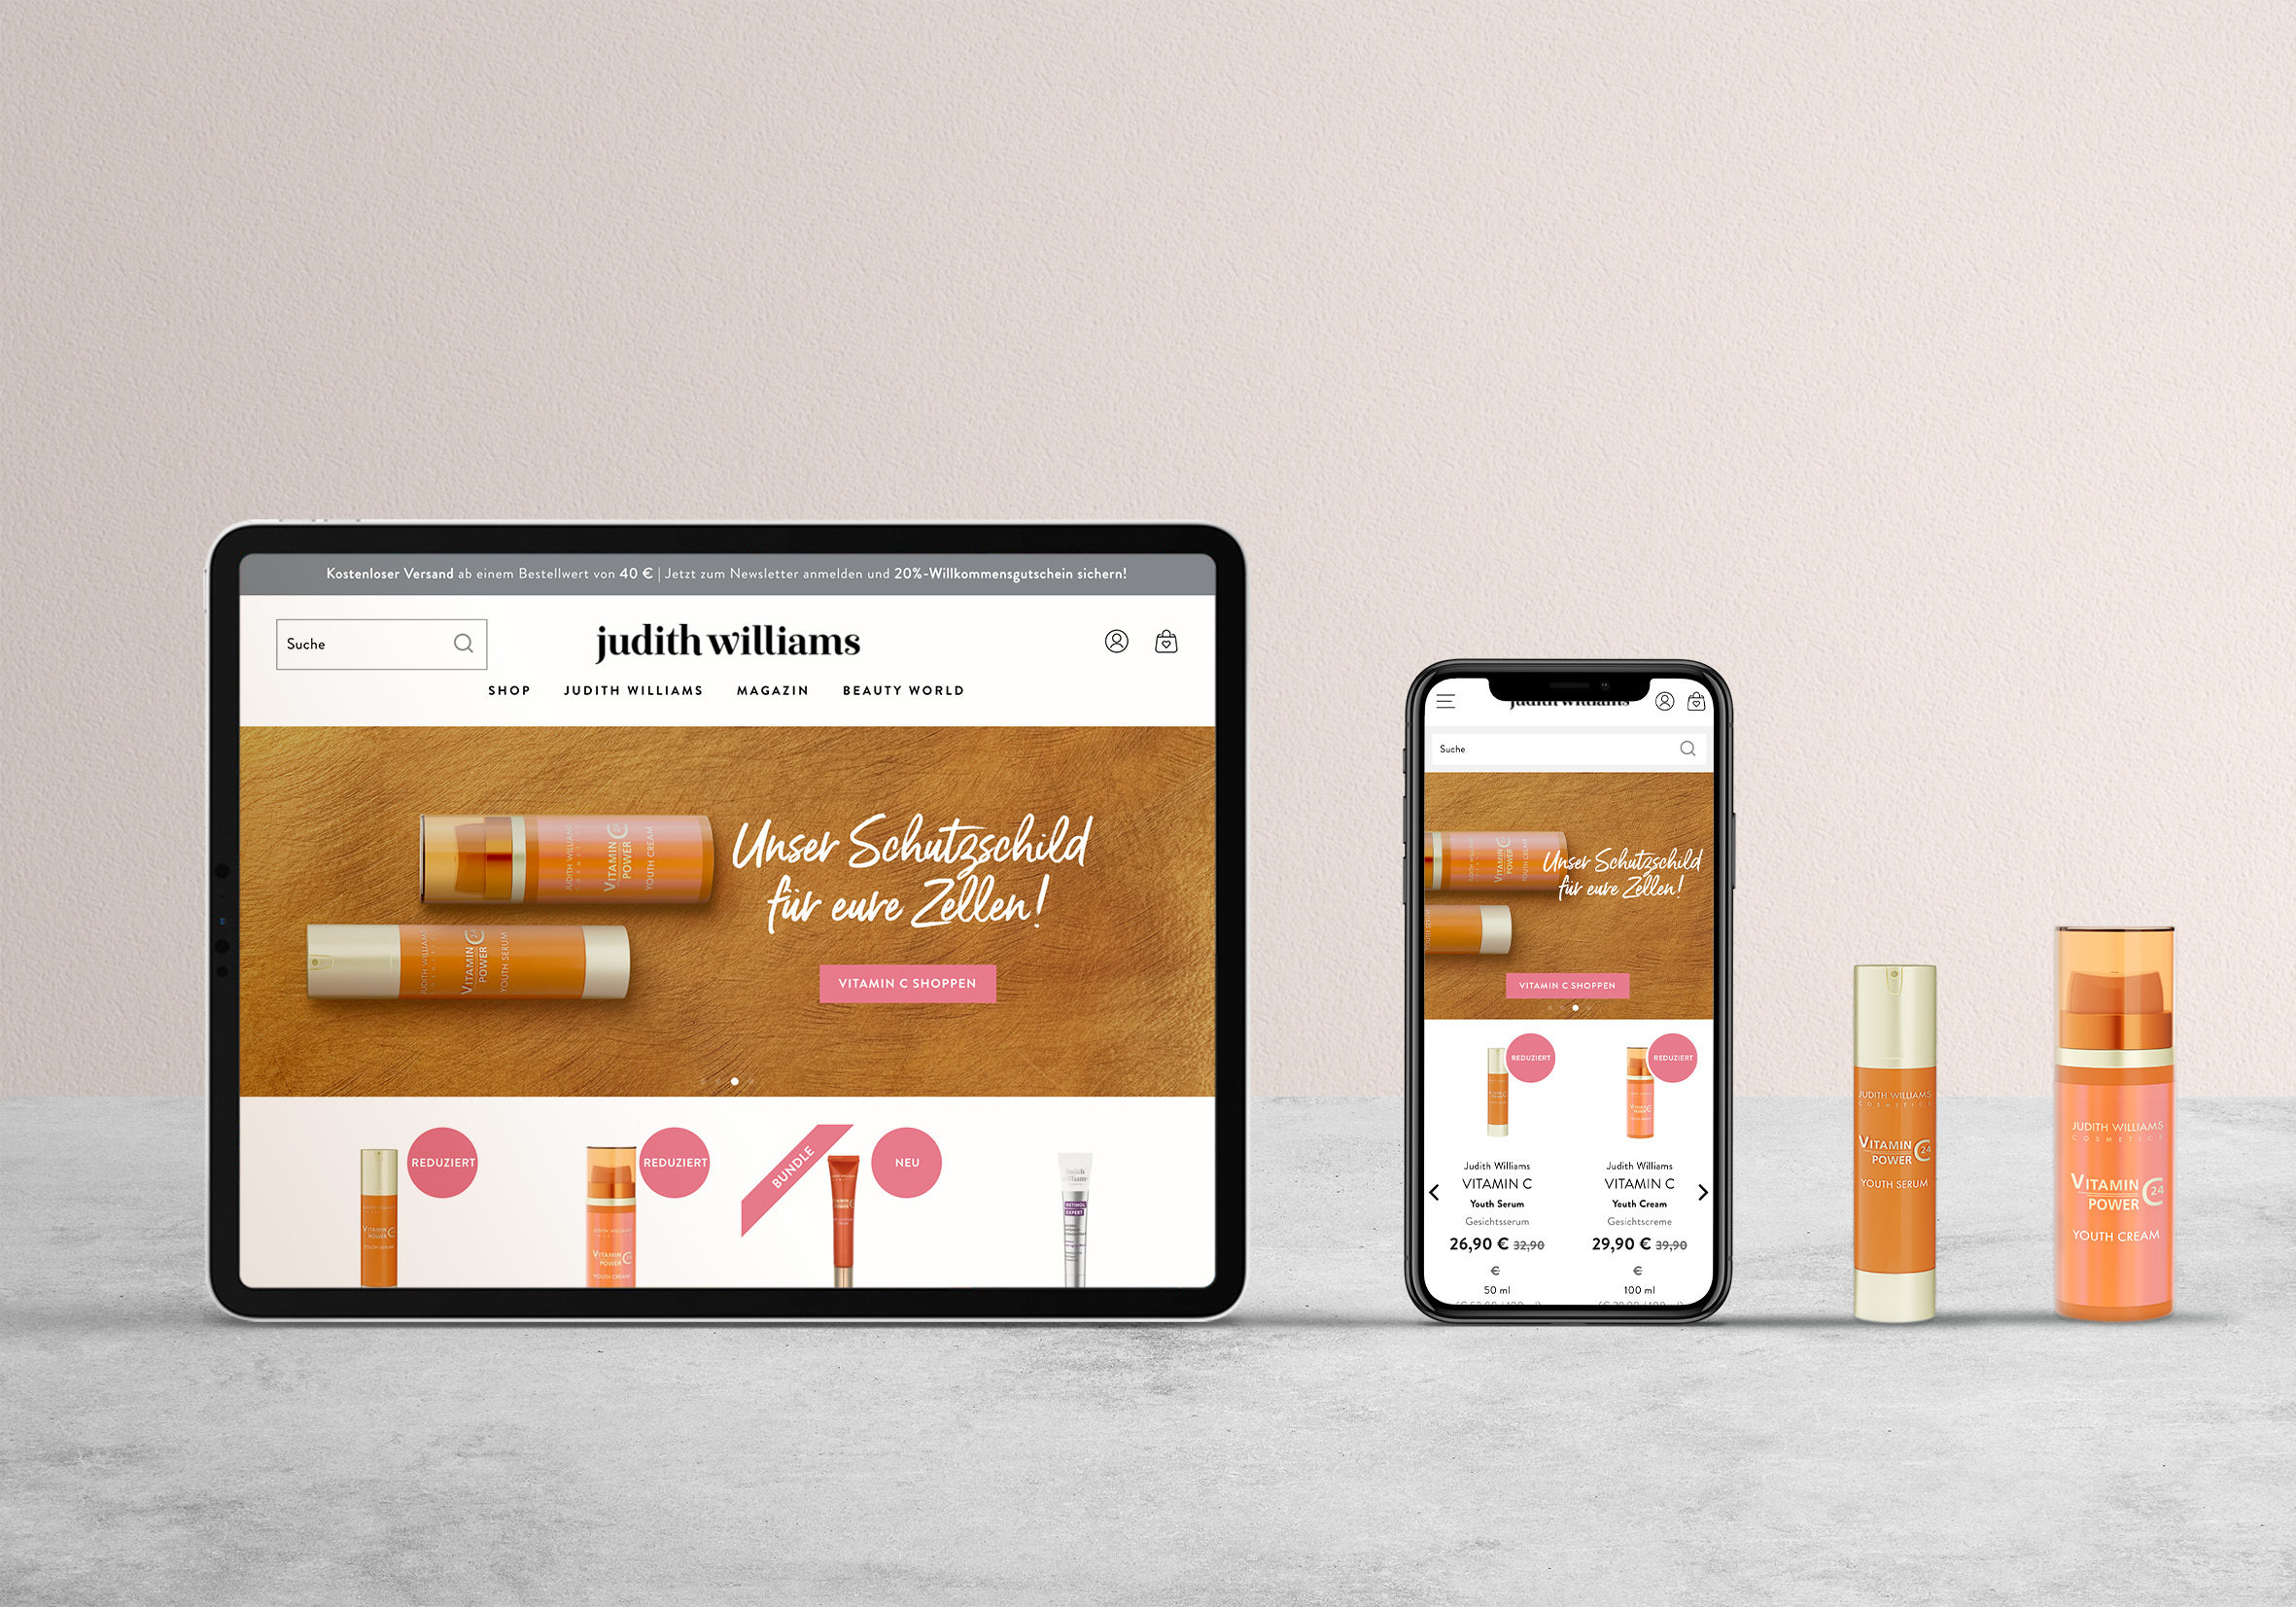 Taking the CURA Cosmetics Group and Judith Williams Cosmetics direct to the consumer